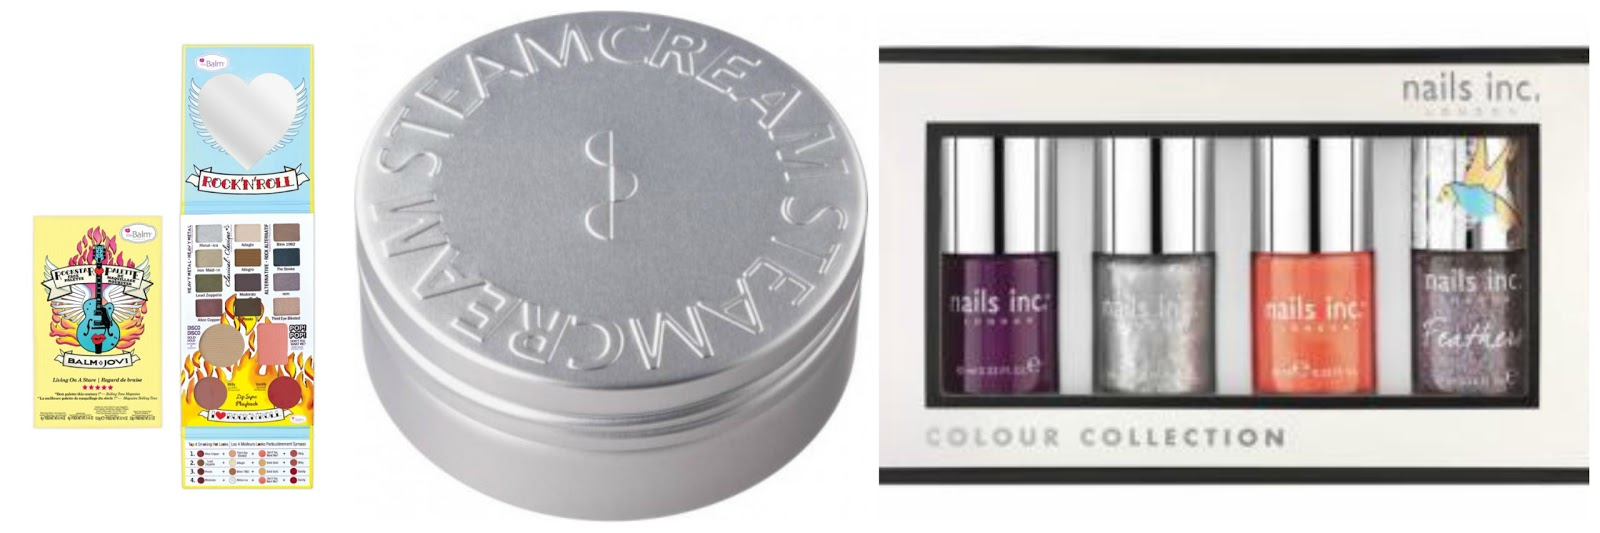 beauty offers from steamcream, the balm and nails inc